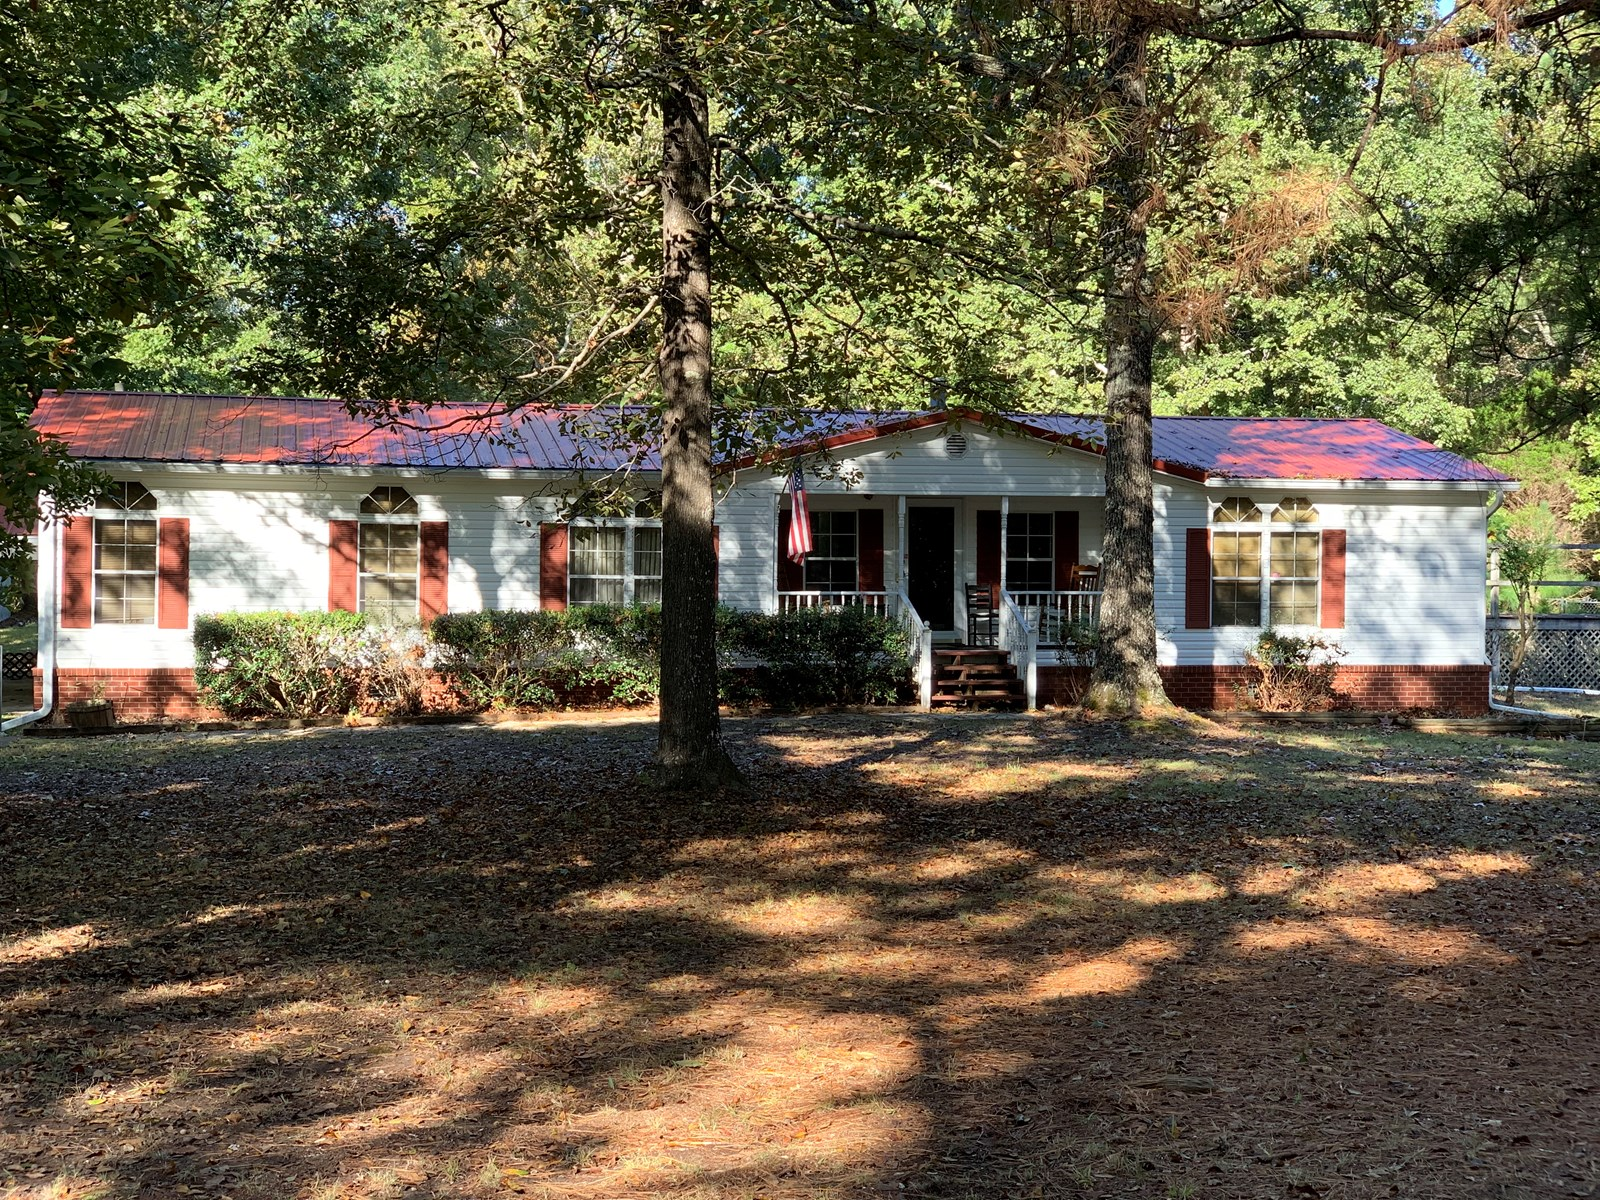 CAMDEN TENNESSEE HOME FOR SALE